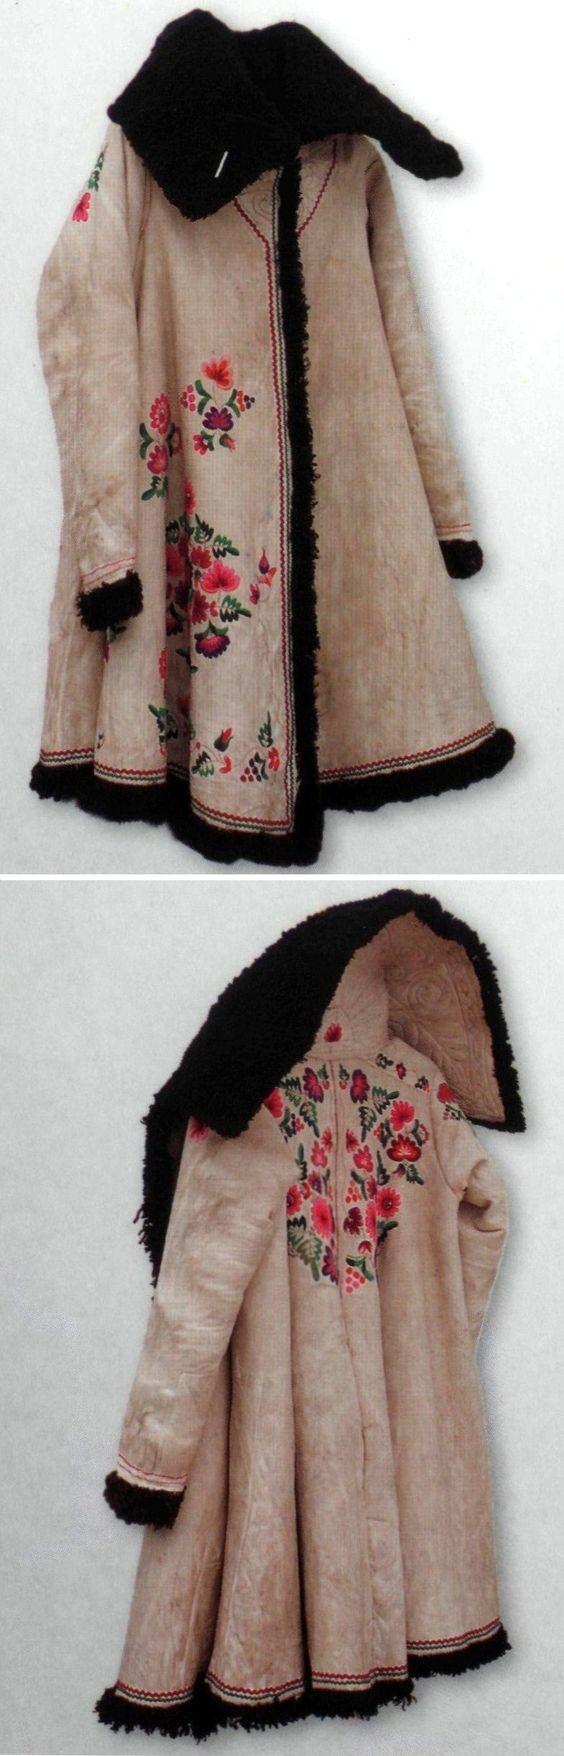 Image result for 19th century wool russian coat